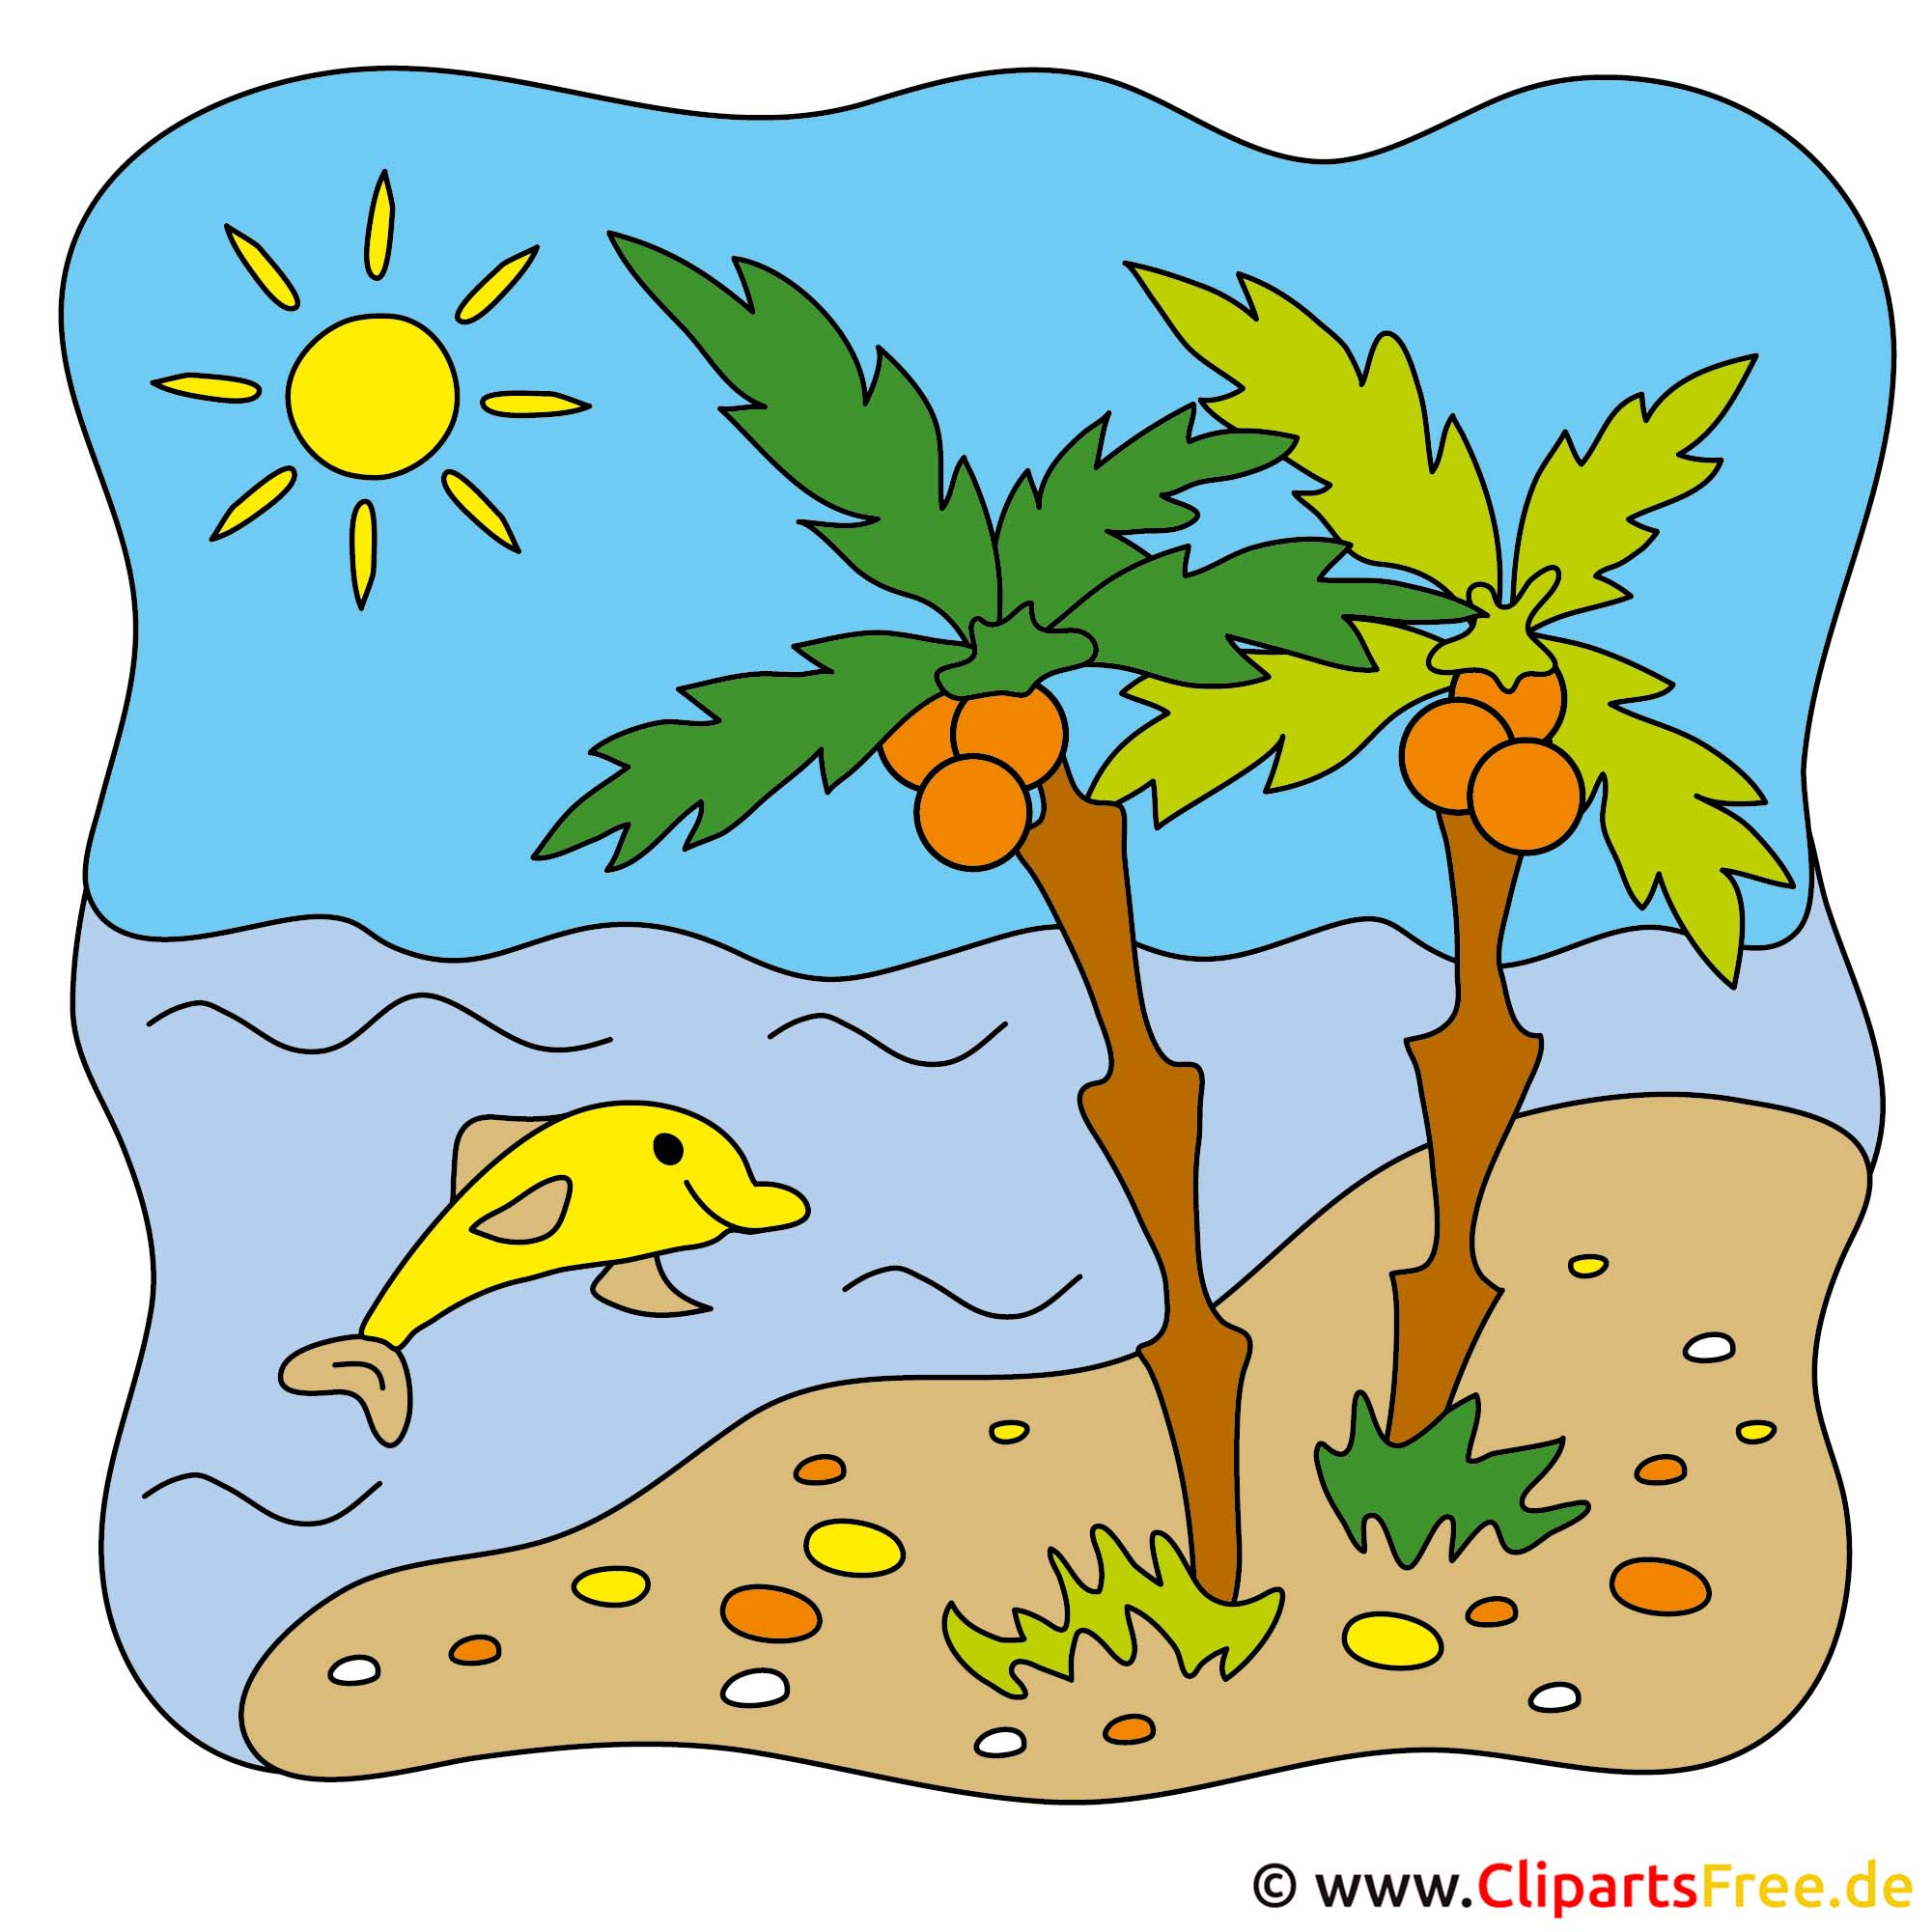 clipart urlaub animiert - photo #15